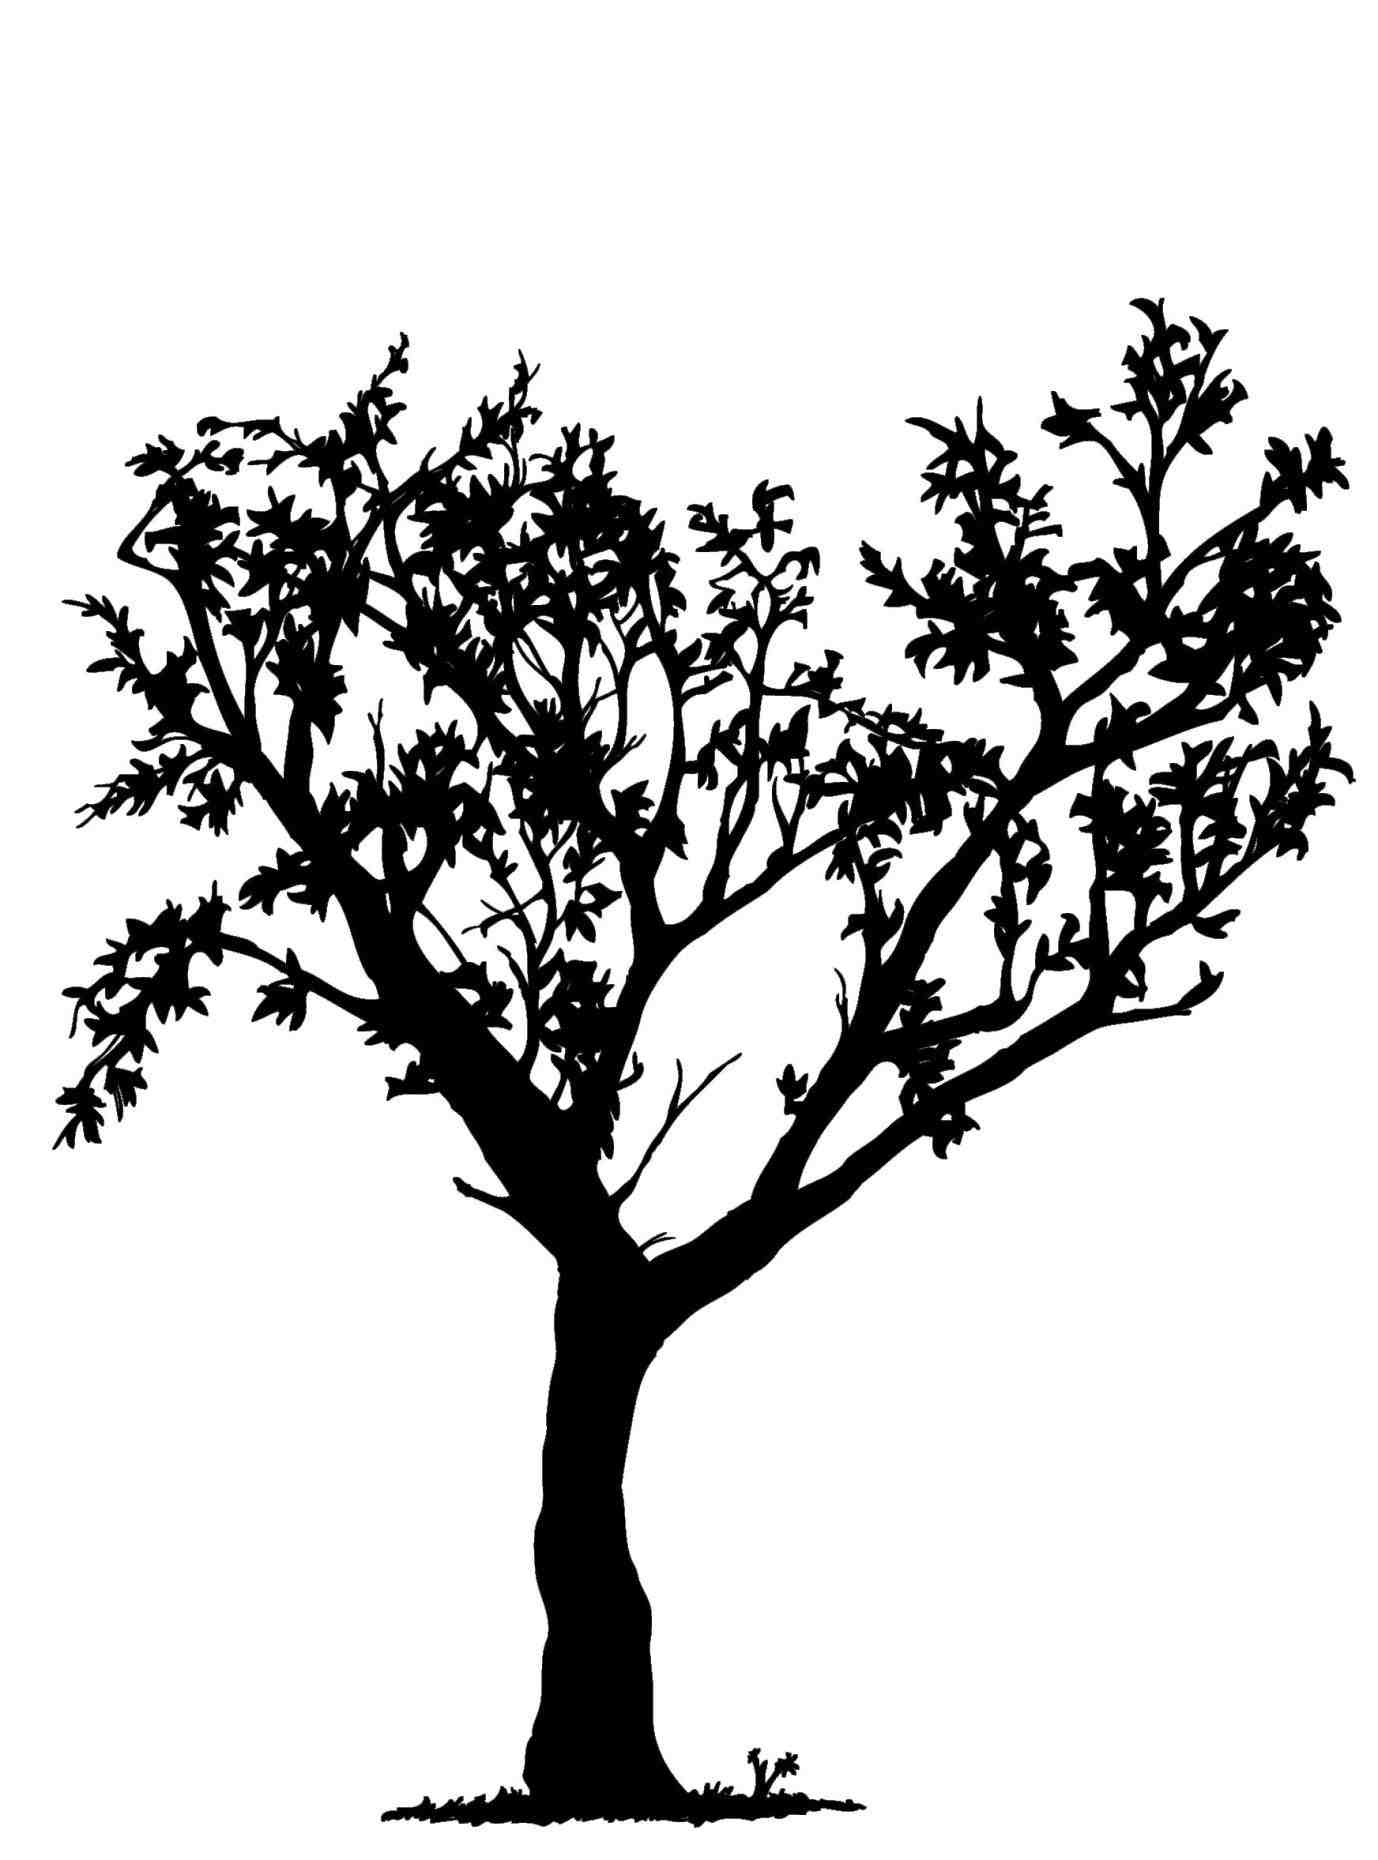 1378x1860 Tree Drawing Easy With Roots